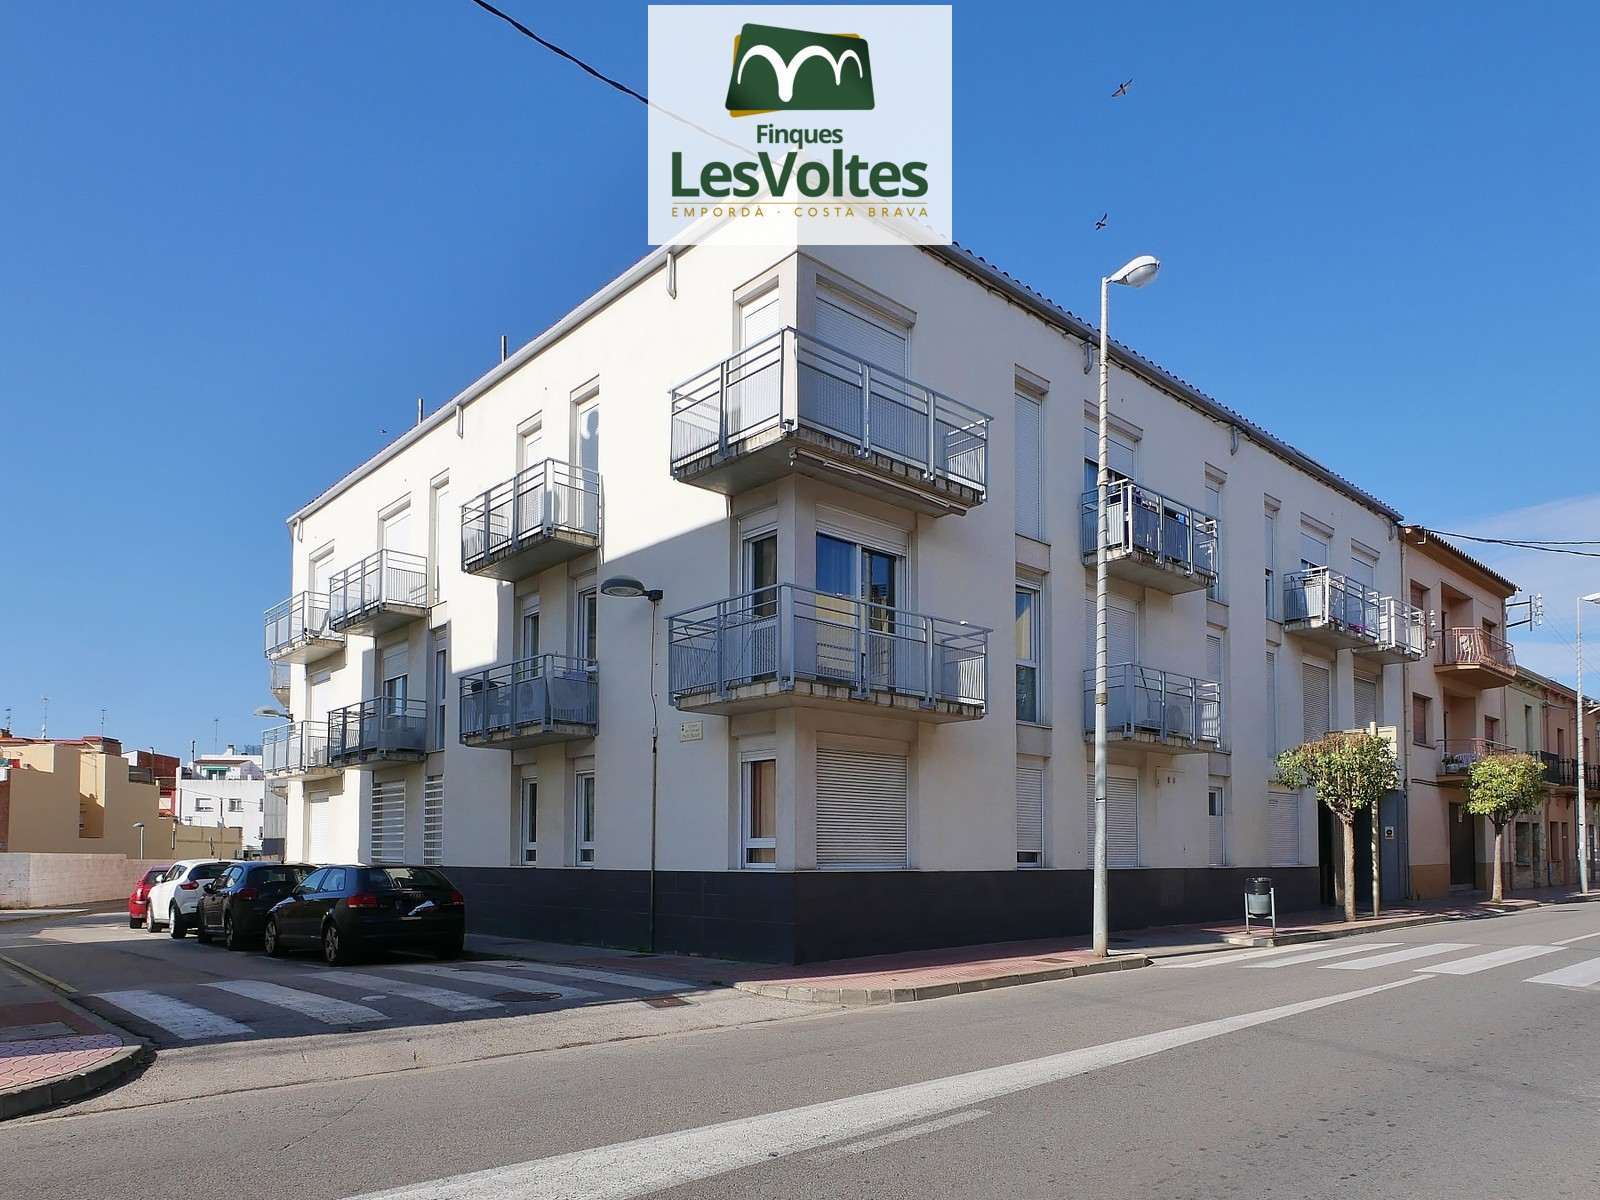 2 BEDROOM APARTMENT WITH TERRACE FOR SALE IN PALAMÓS. VERY QUIET COMMUNITY.